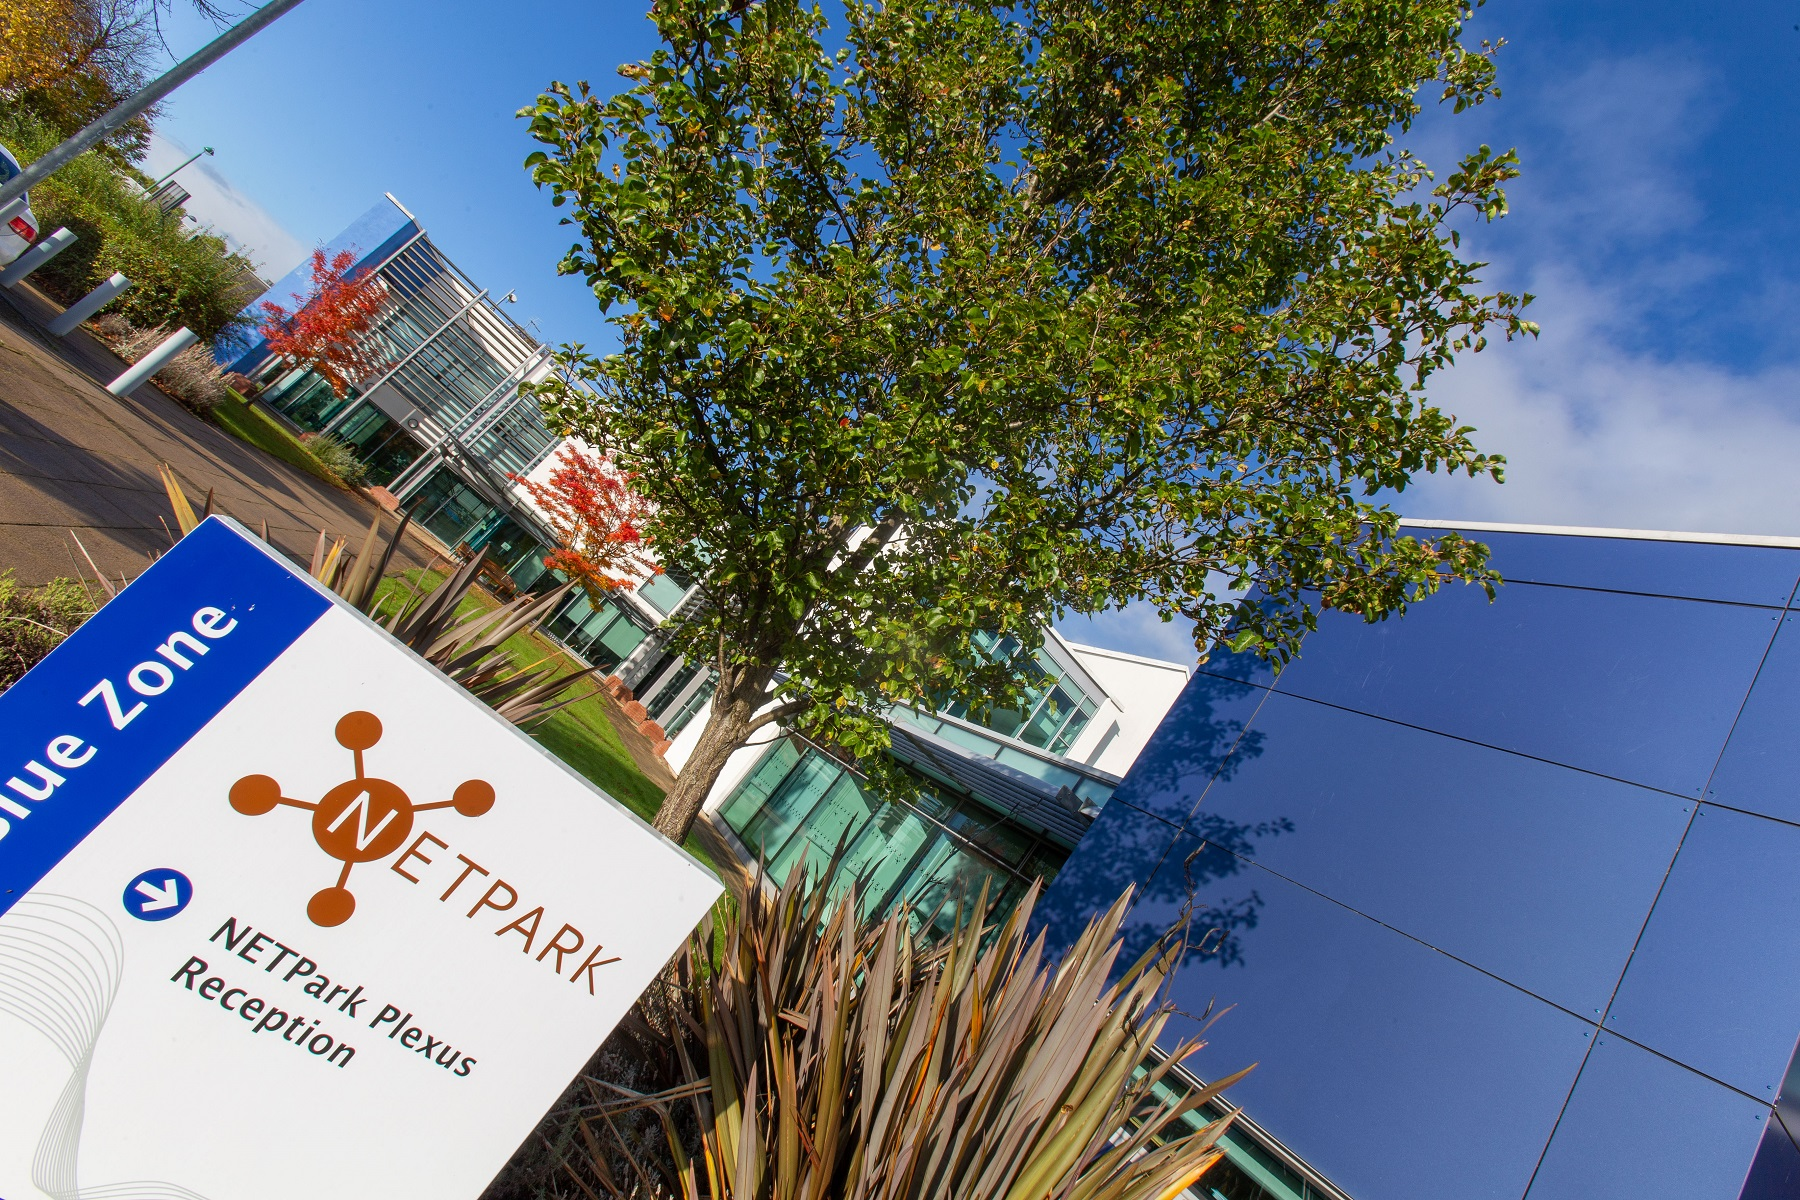 NETPark is the only UK science park with two UK catapult centres